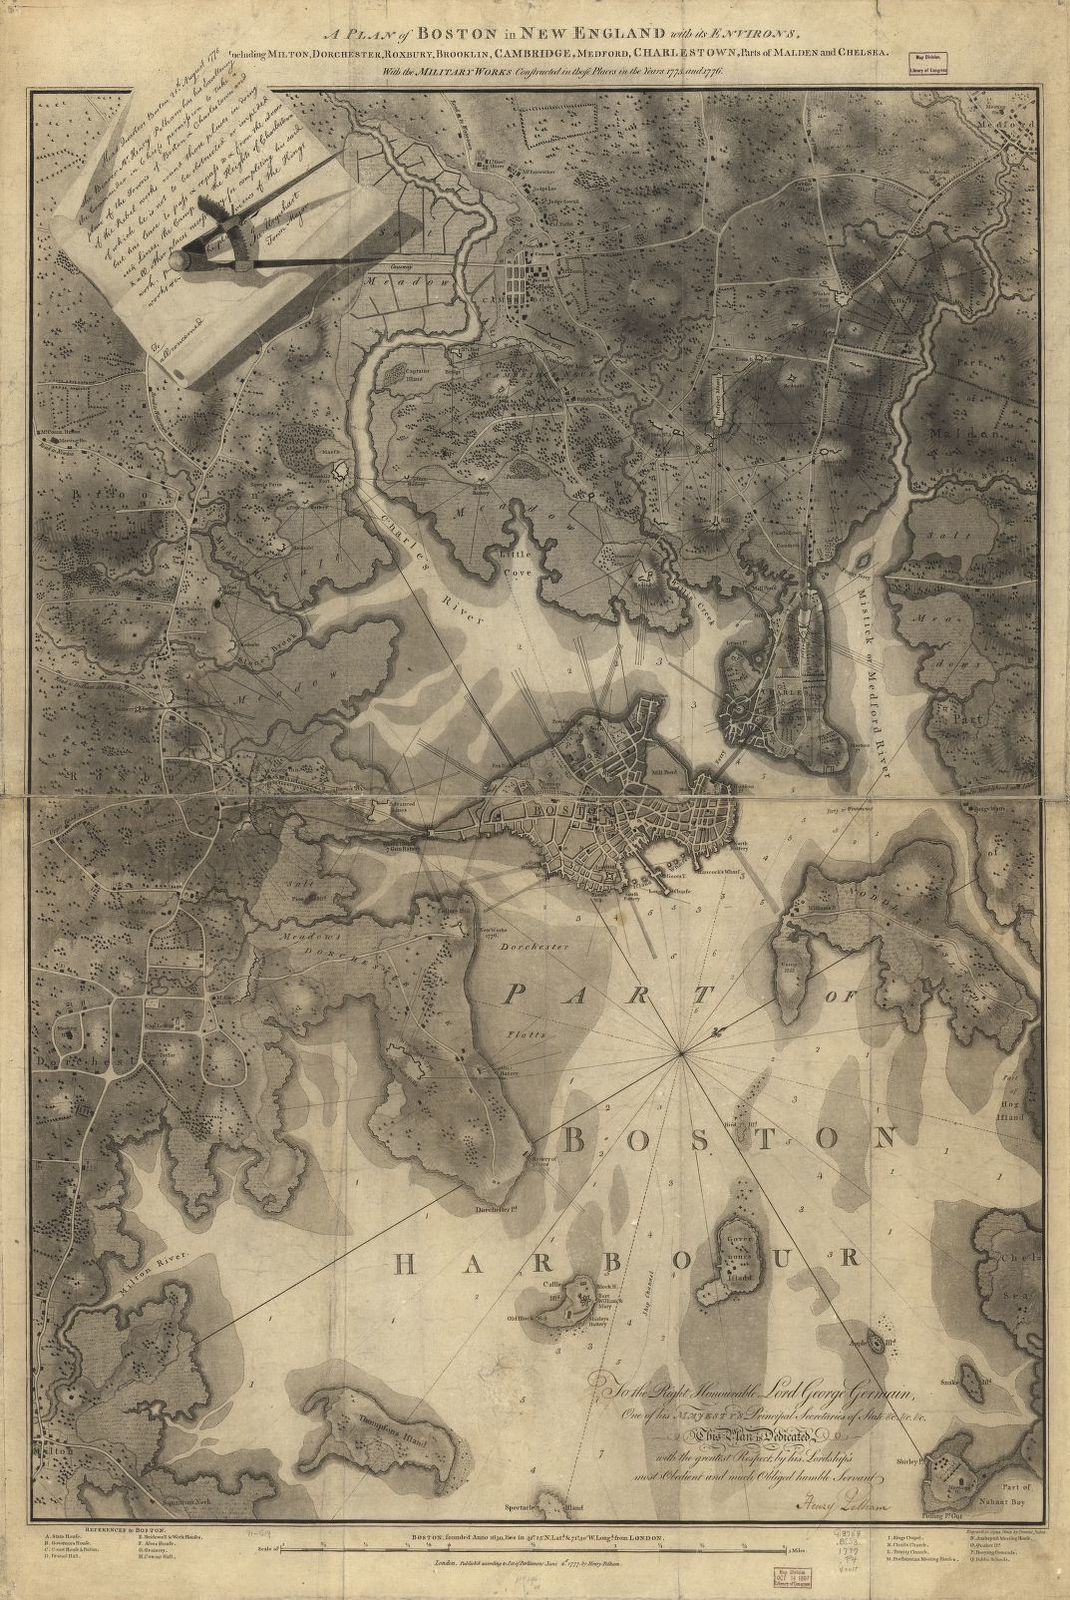 A plan of Boston in New England with its environs, including Milton, Dorchester, Roxbury, Brooklin, Cambridge, Medford, Charlestown, parts of Malden and Chelsea with the military works constructed in those places in the years 1775 and 1776.